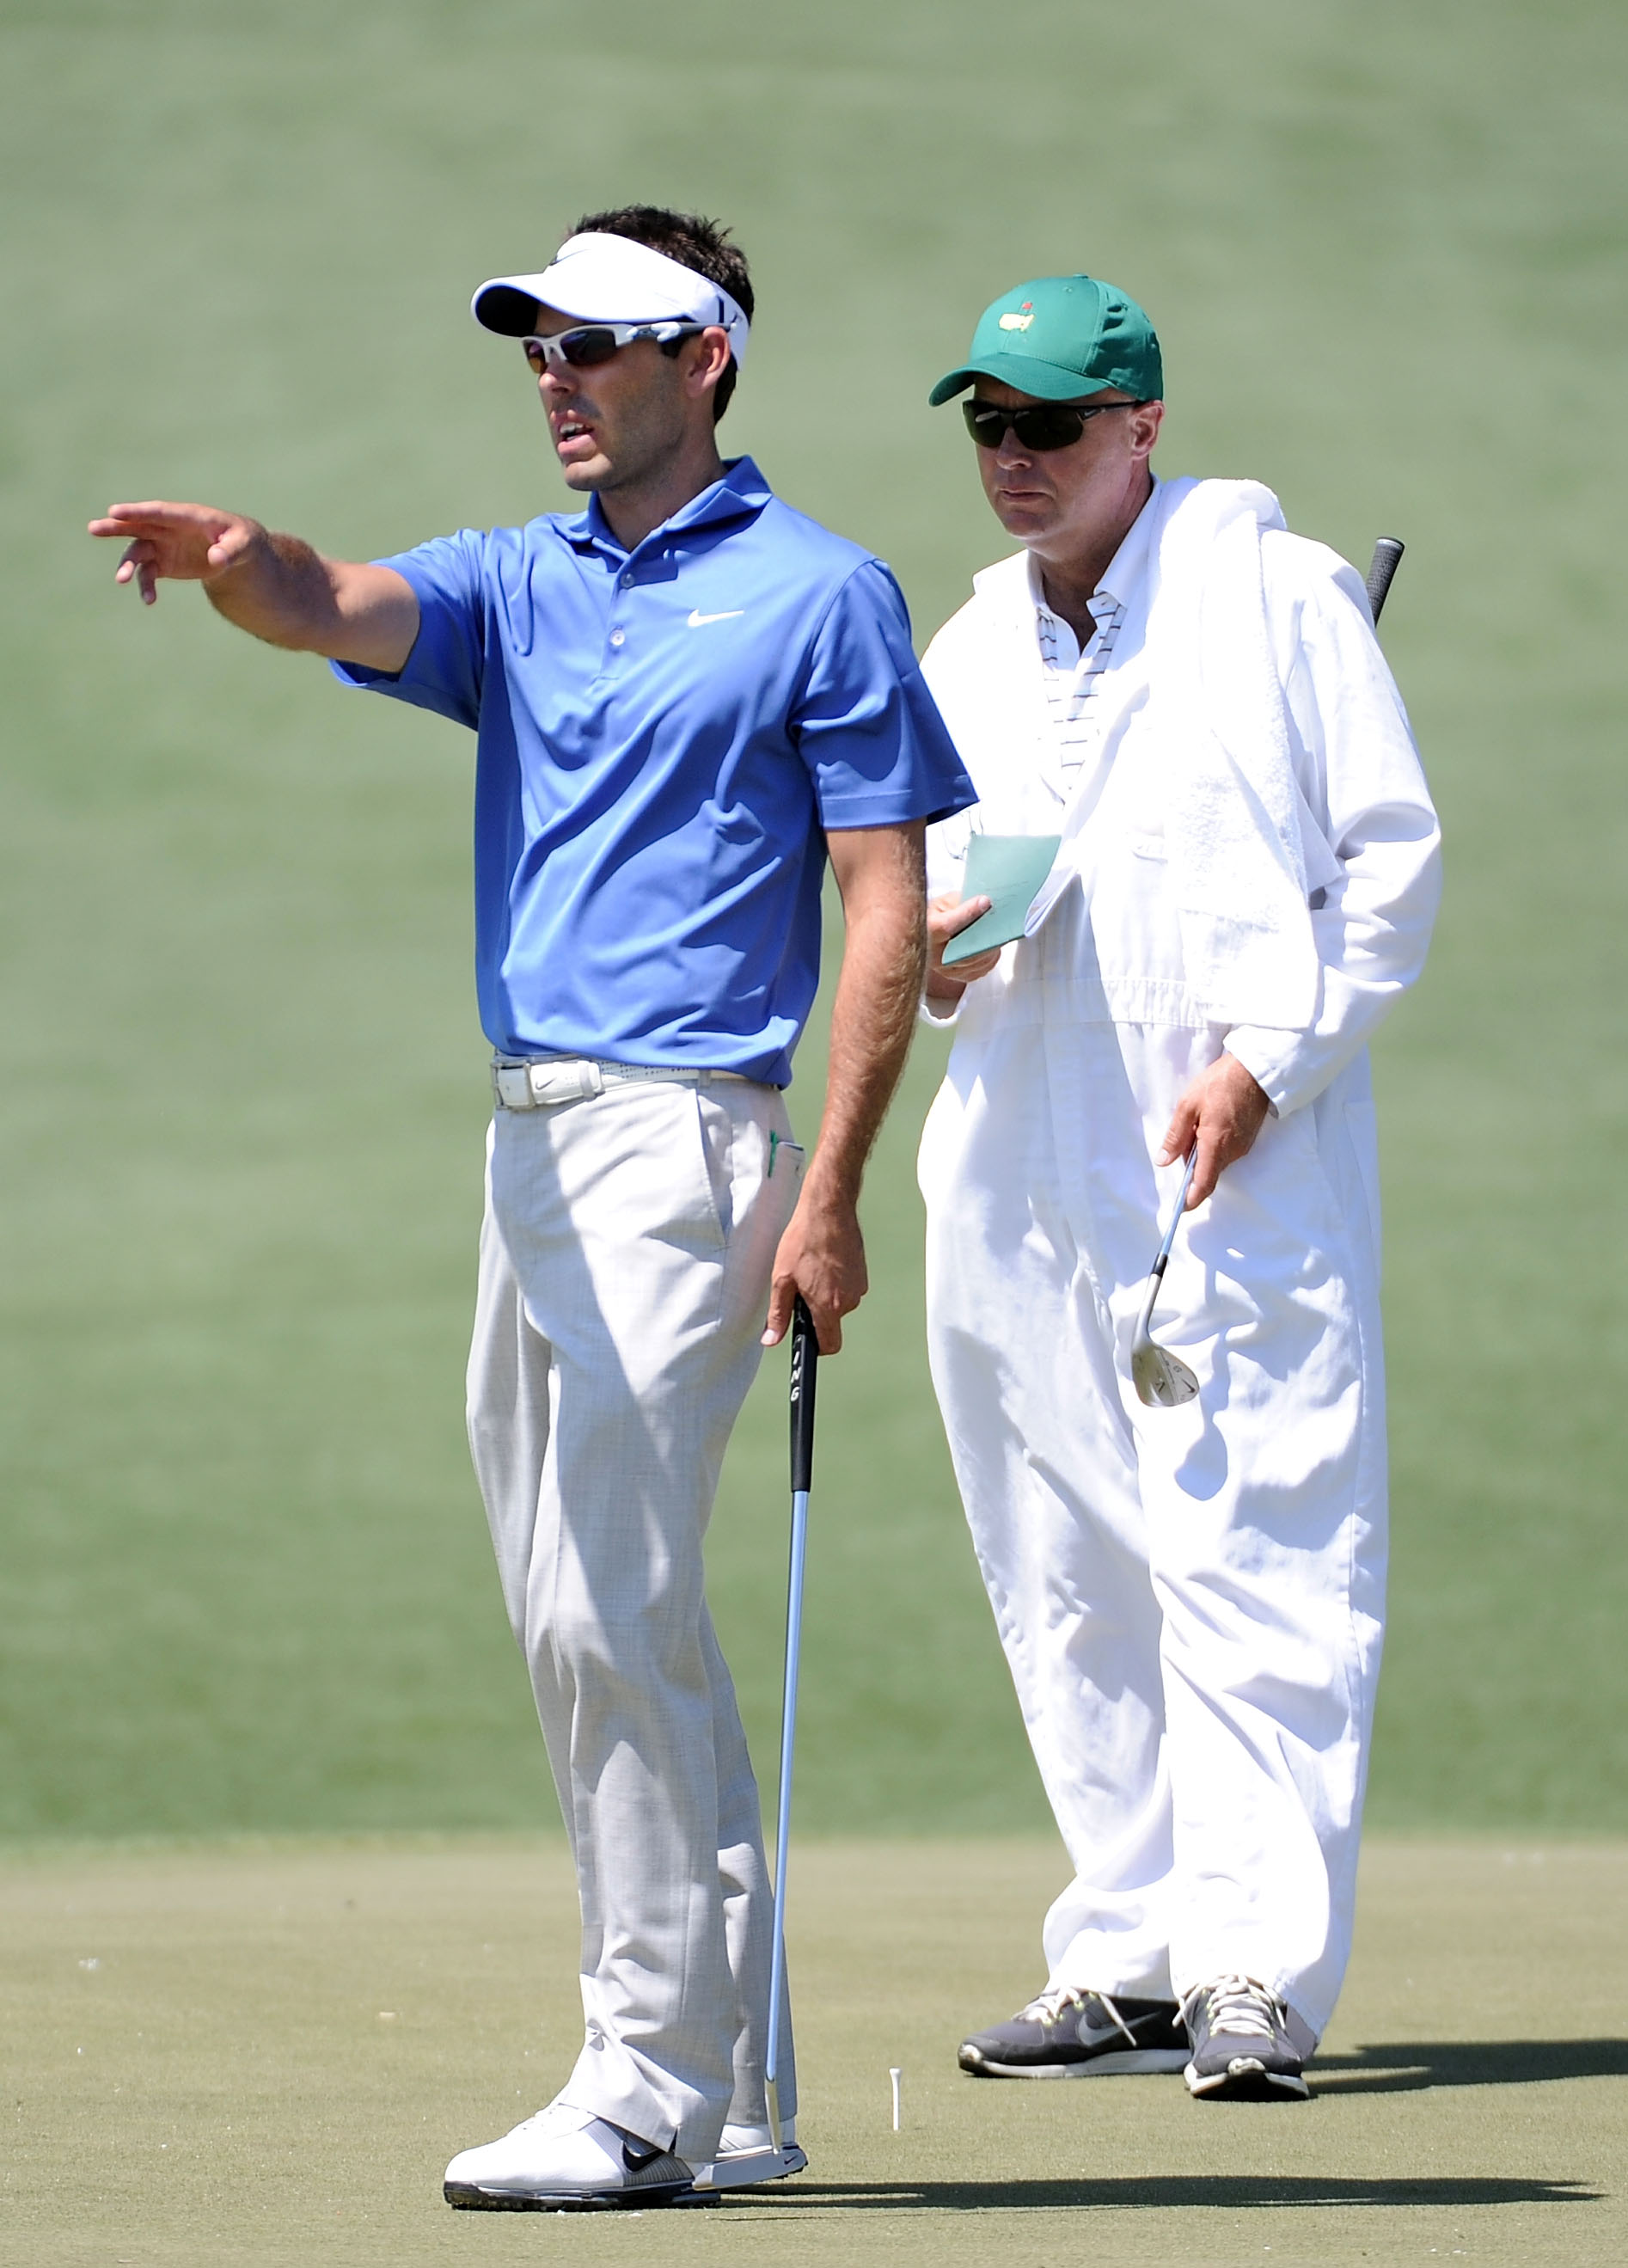 AUGUSTA, GA - APRIL 04:  Charl Schwartzel of South Africa chats with his caddie during a practice round prior to the 2011 Masters Tournament at Augusta National Golf Club on April 4, 2011 in Augusta, Georgia.  (Photo by Harry How/Getty Images)